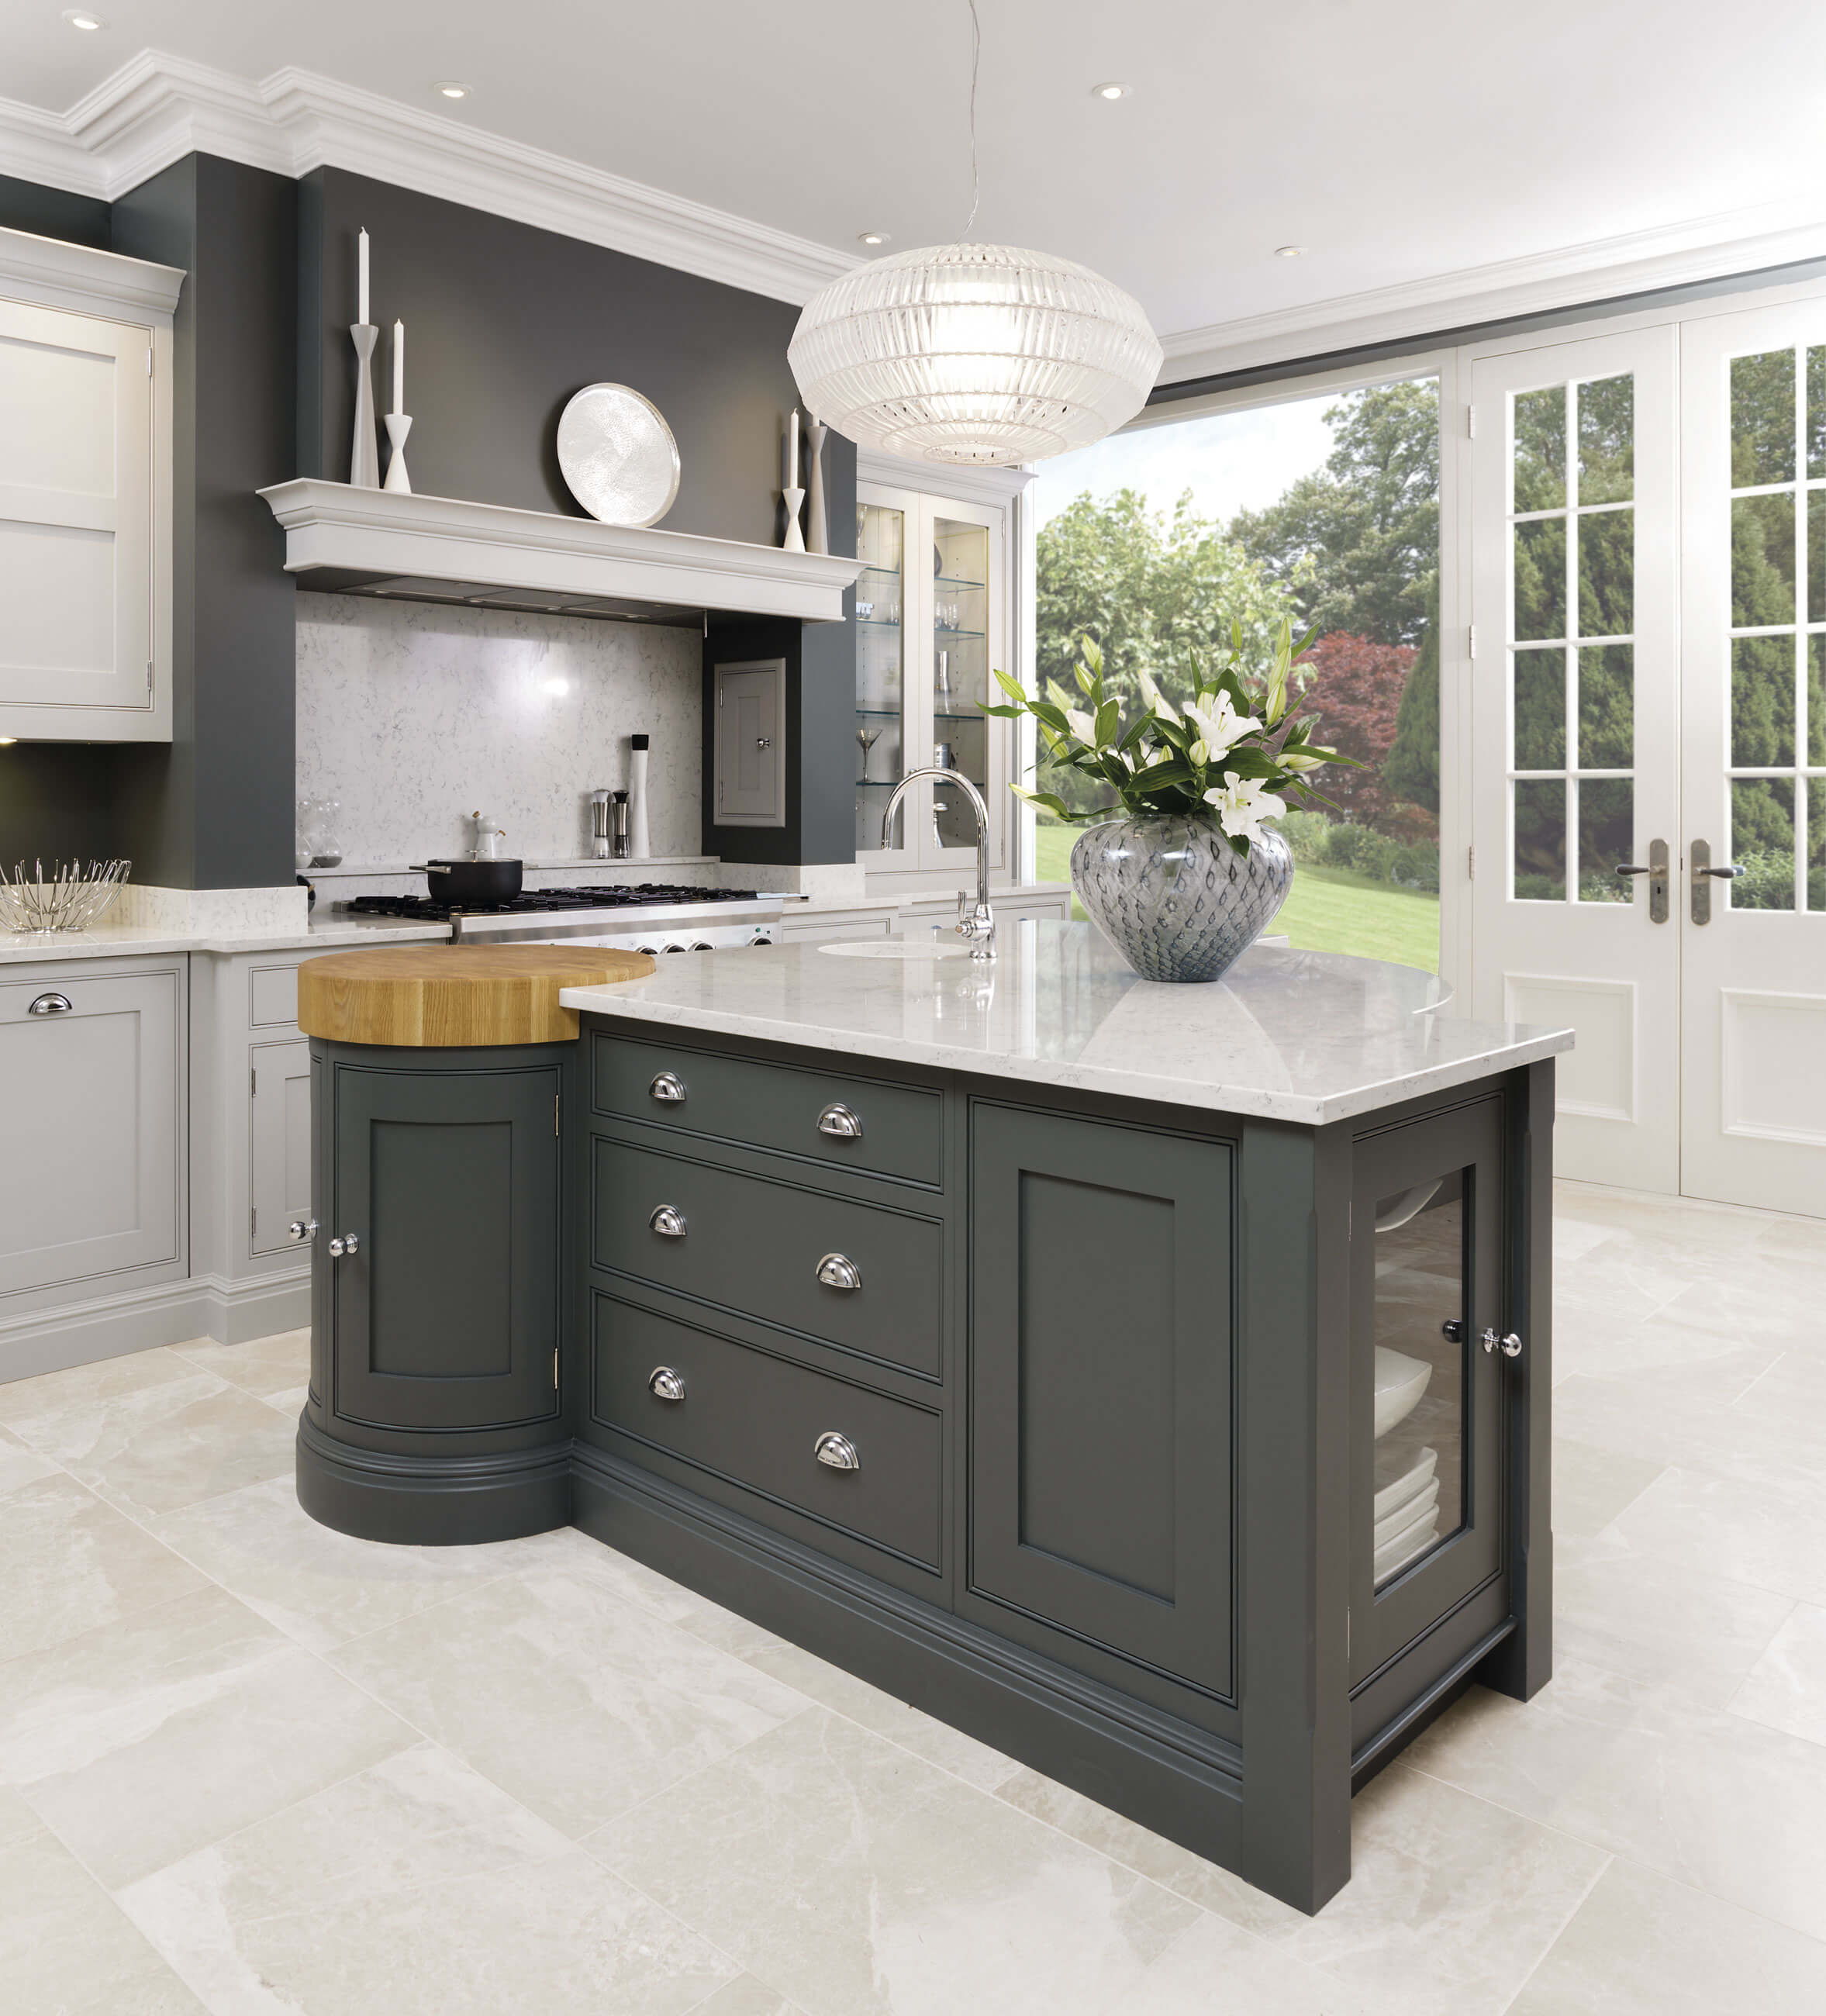 Superior Our Talented Designers Will Work With You To Create The Perfect Island For  Your Kitchen, With All The Features You Desire. Kitchen Islands Can Be ...